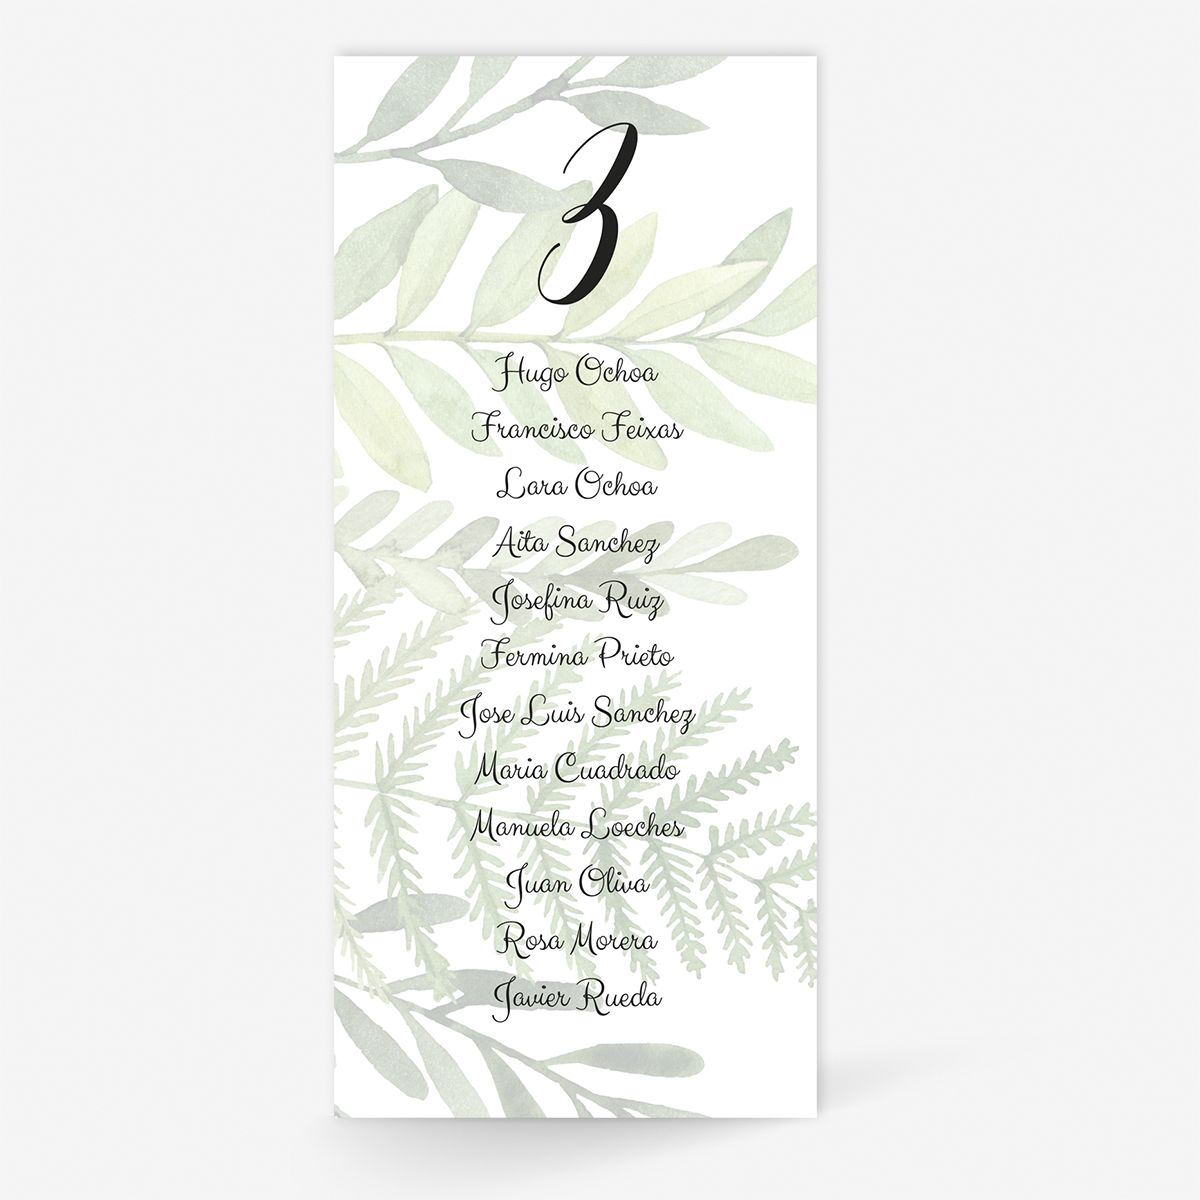 Plan de mesa (Seating plan) boda Toscana